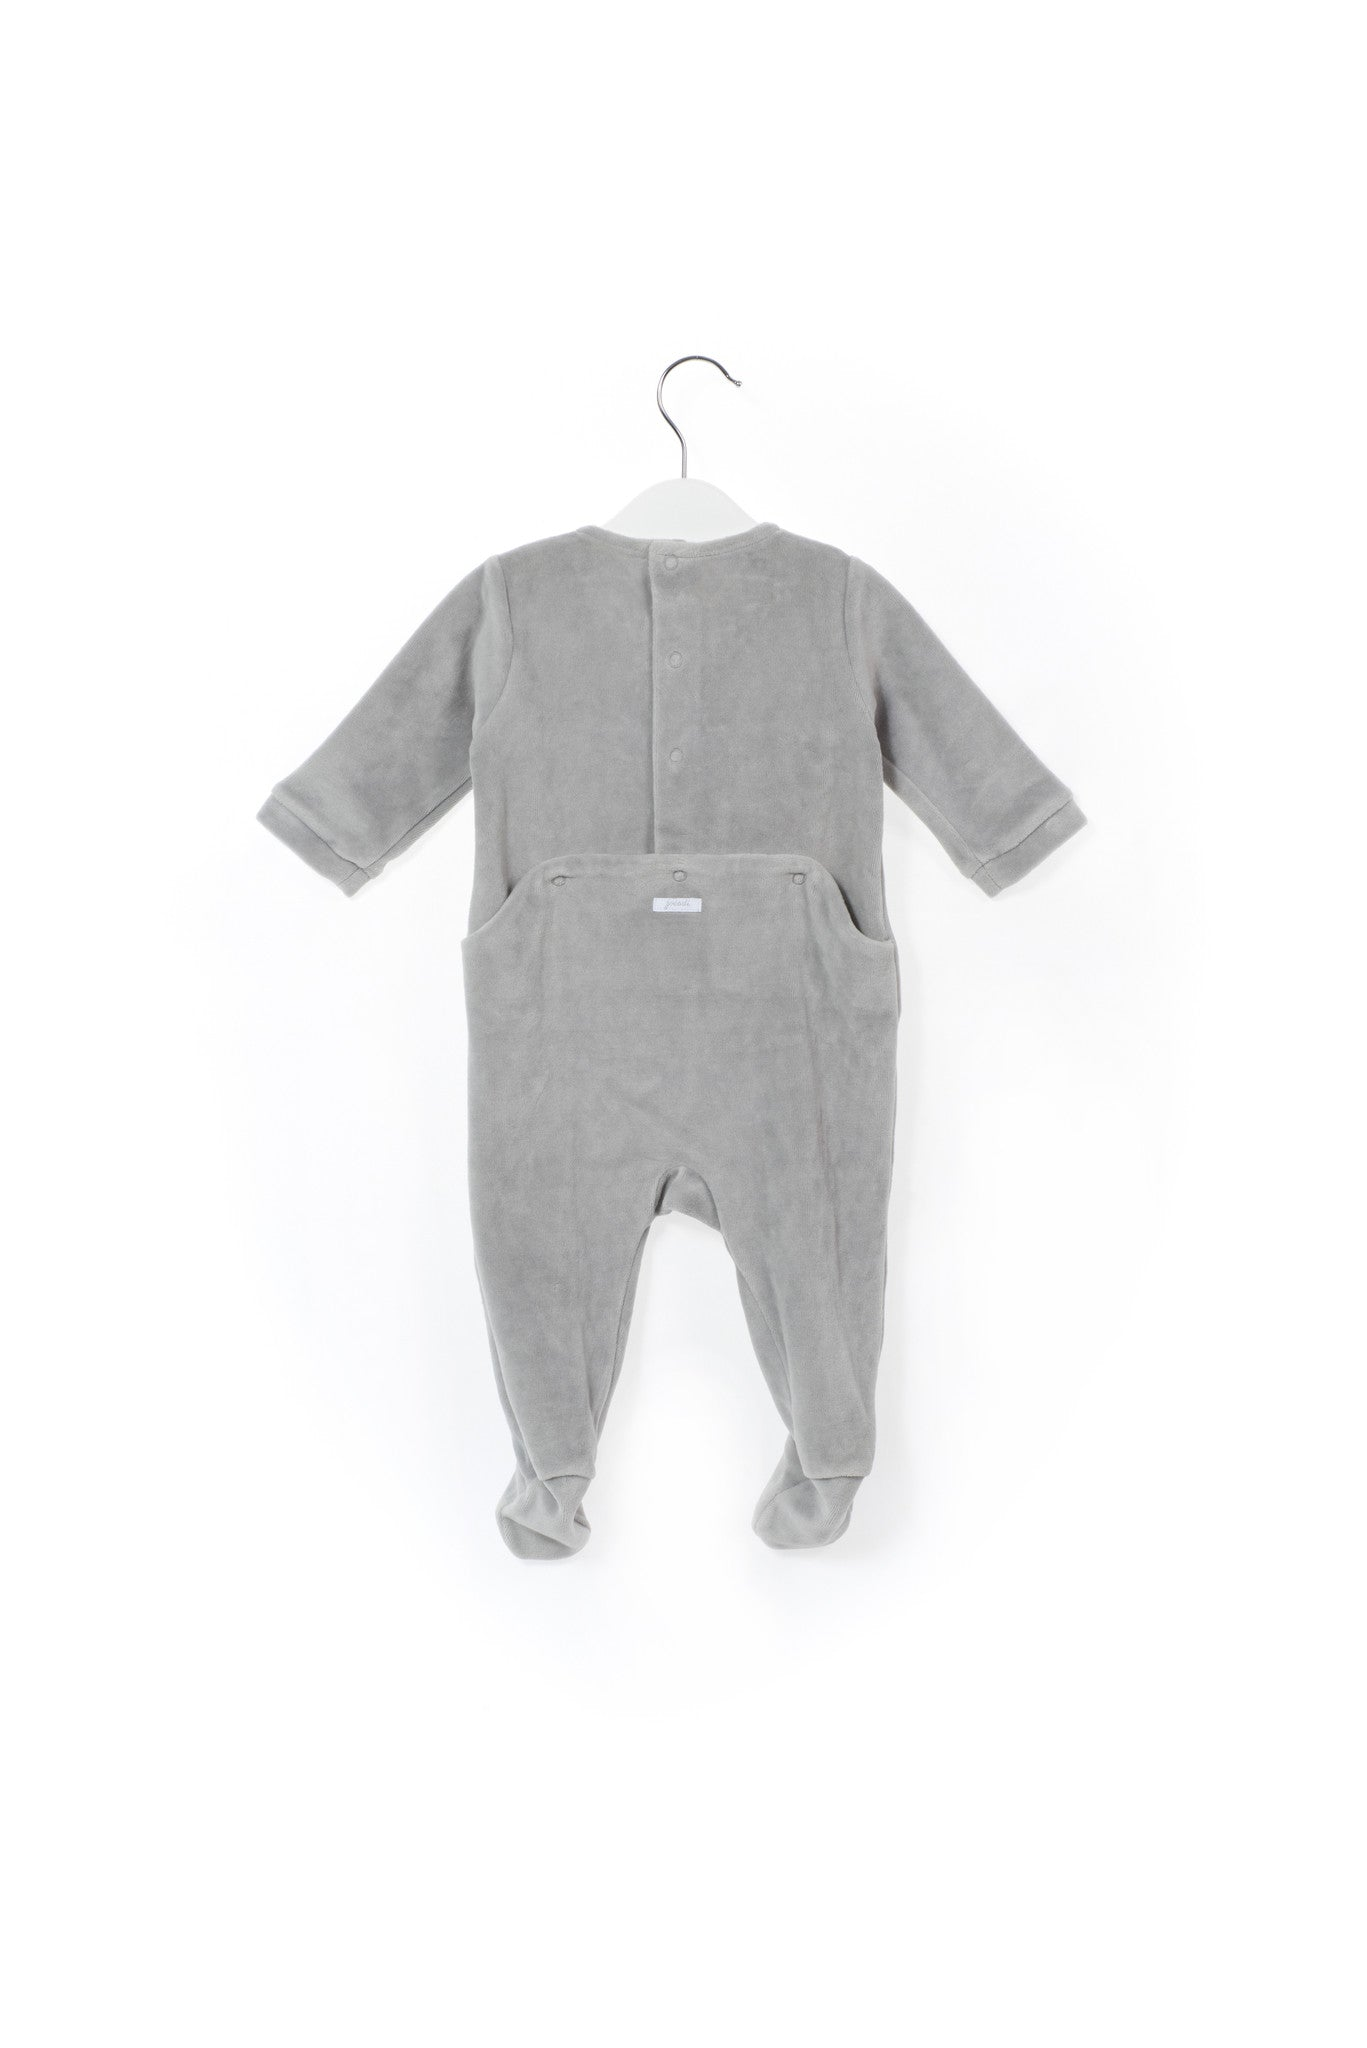 10001130 Jacadi Baby~Jumpsuit 3-6M at Retykle